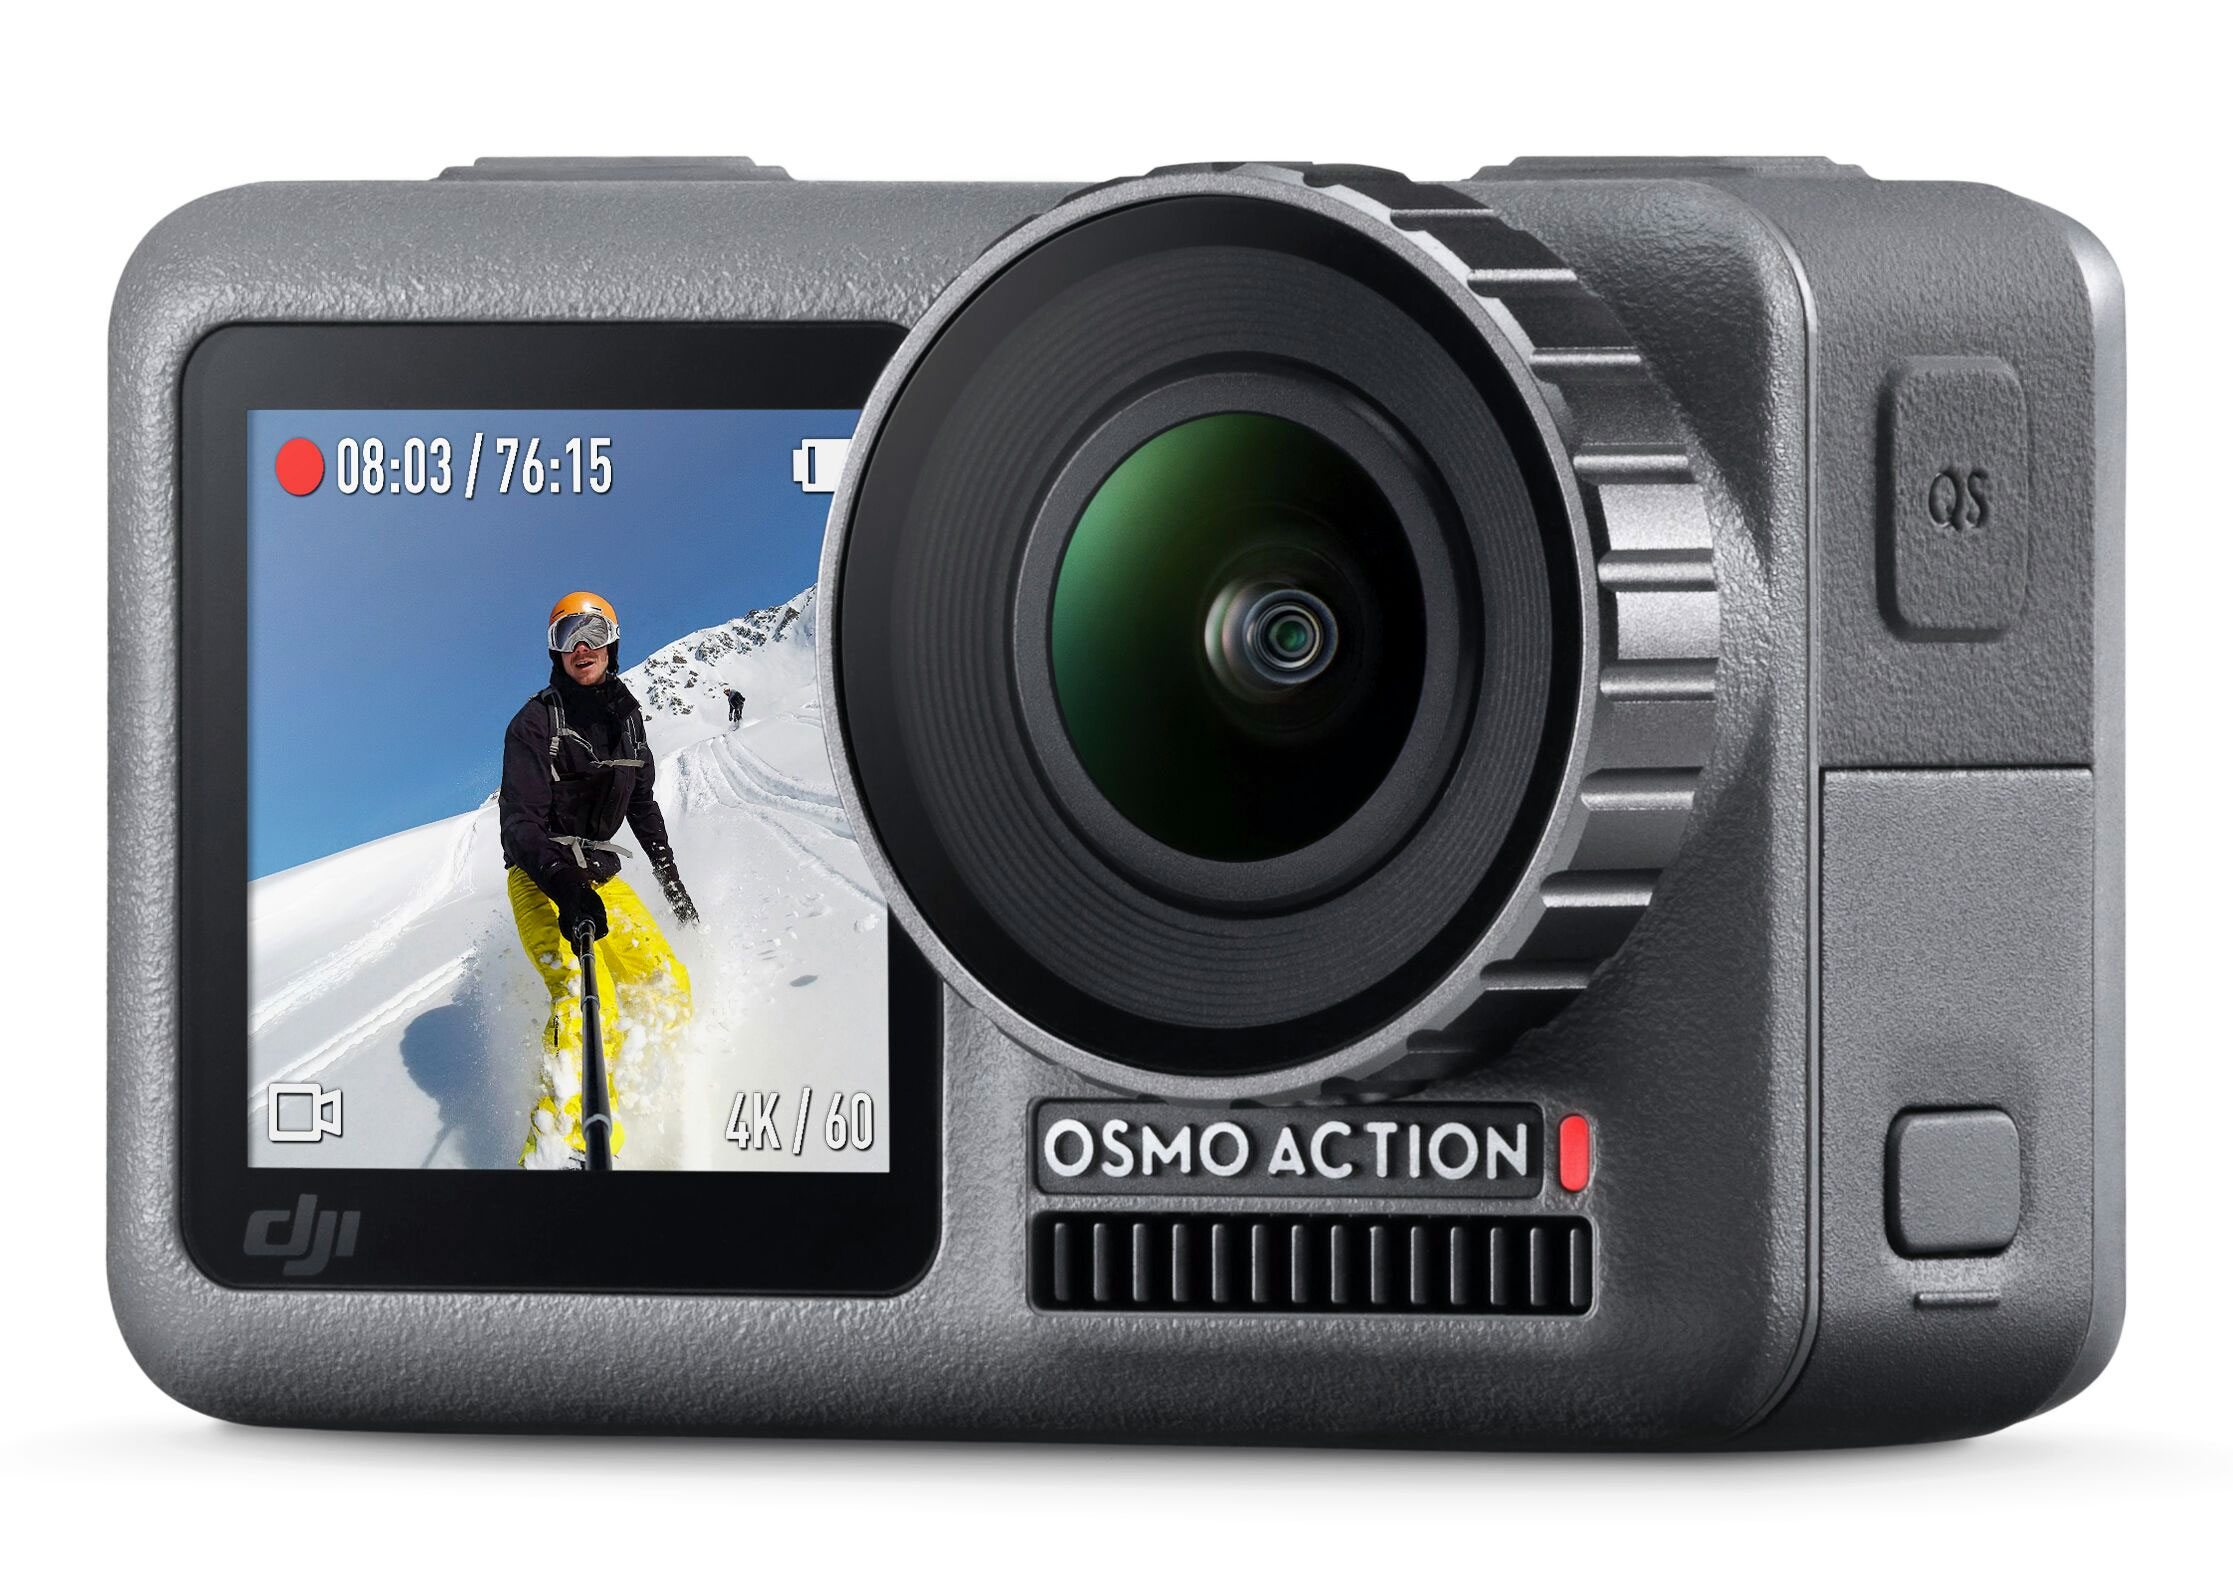 DJI takes on GoPro with new Osmo Action camera